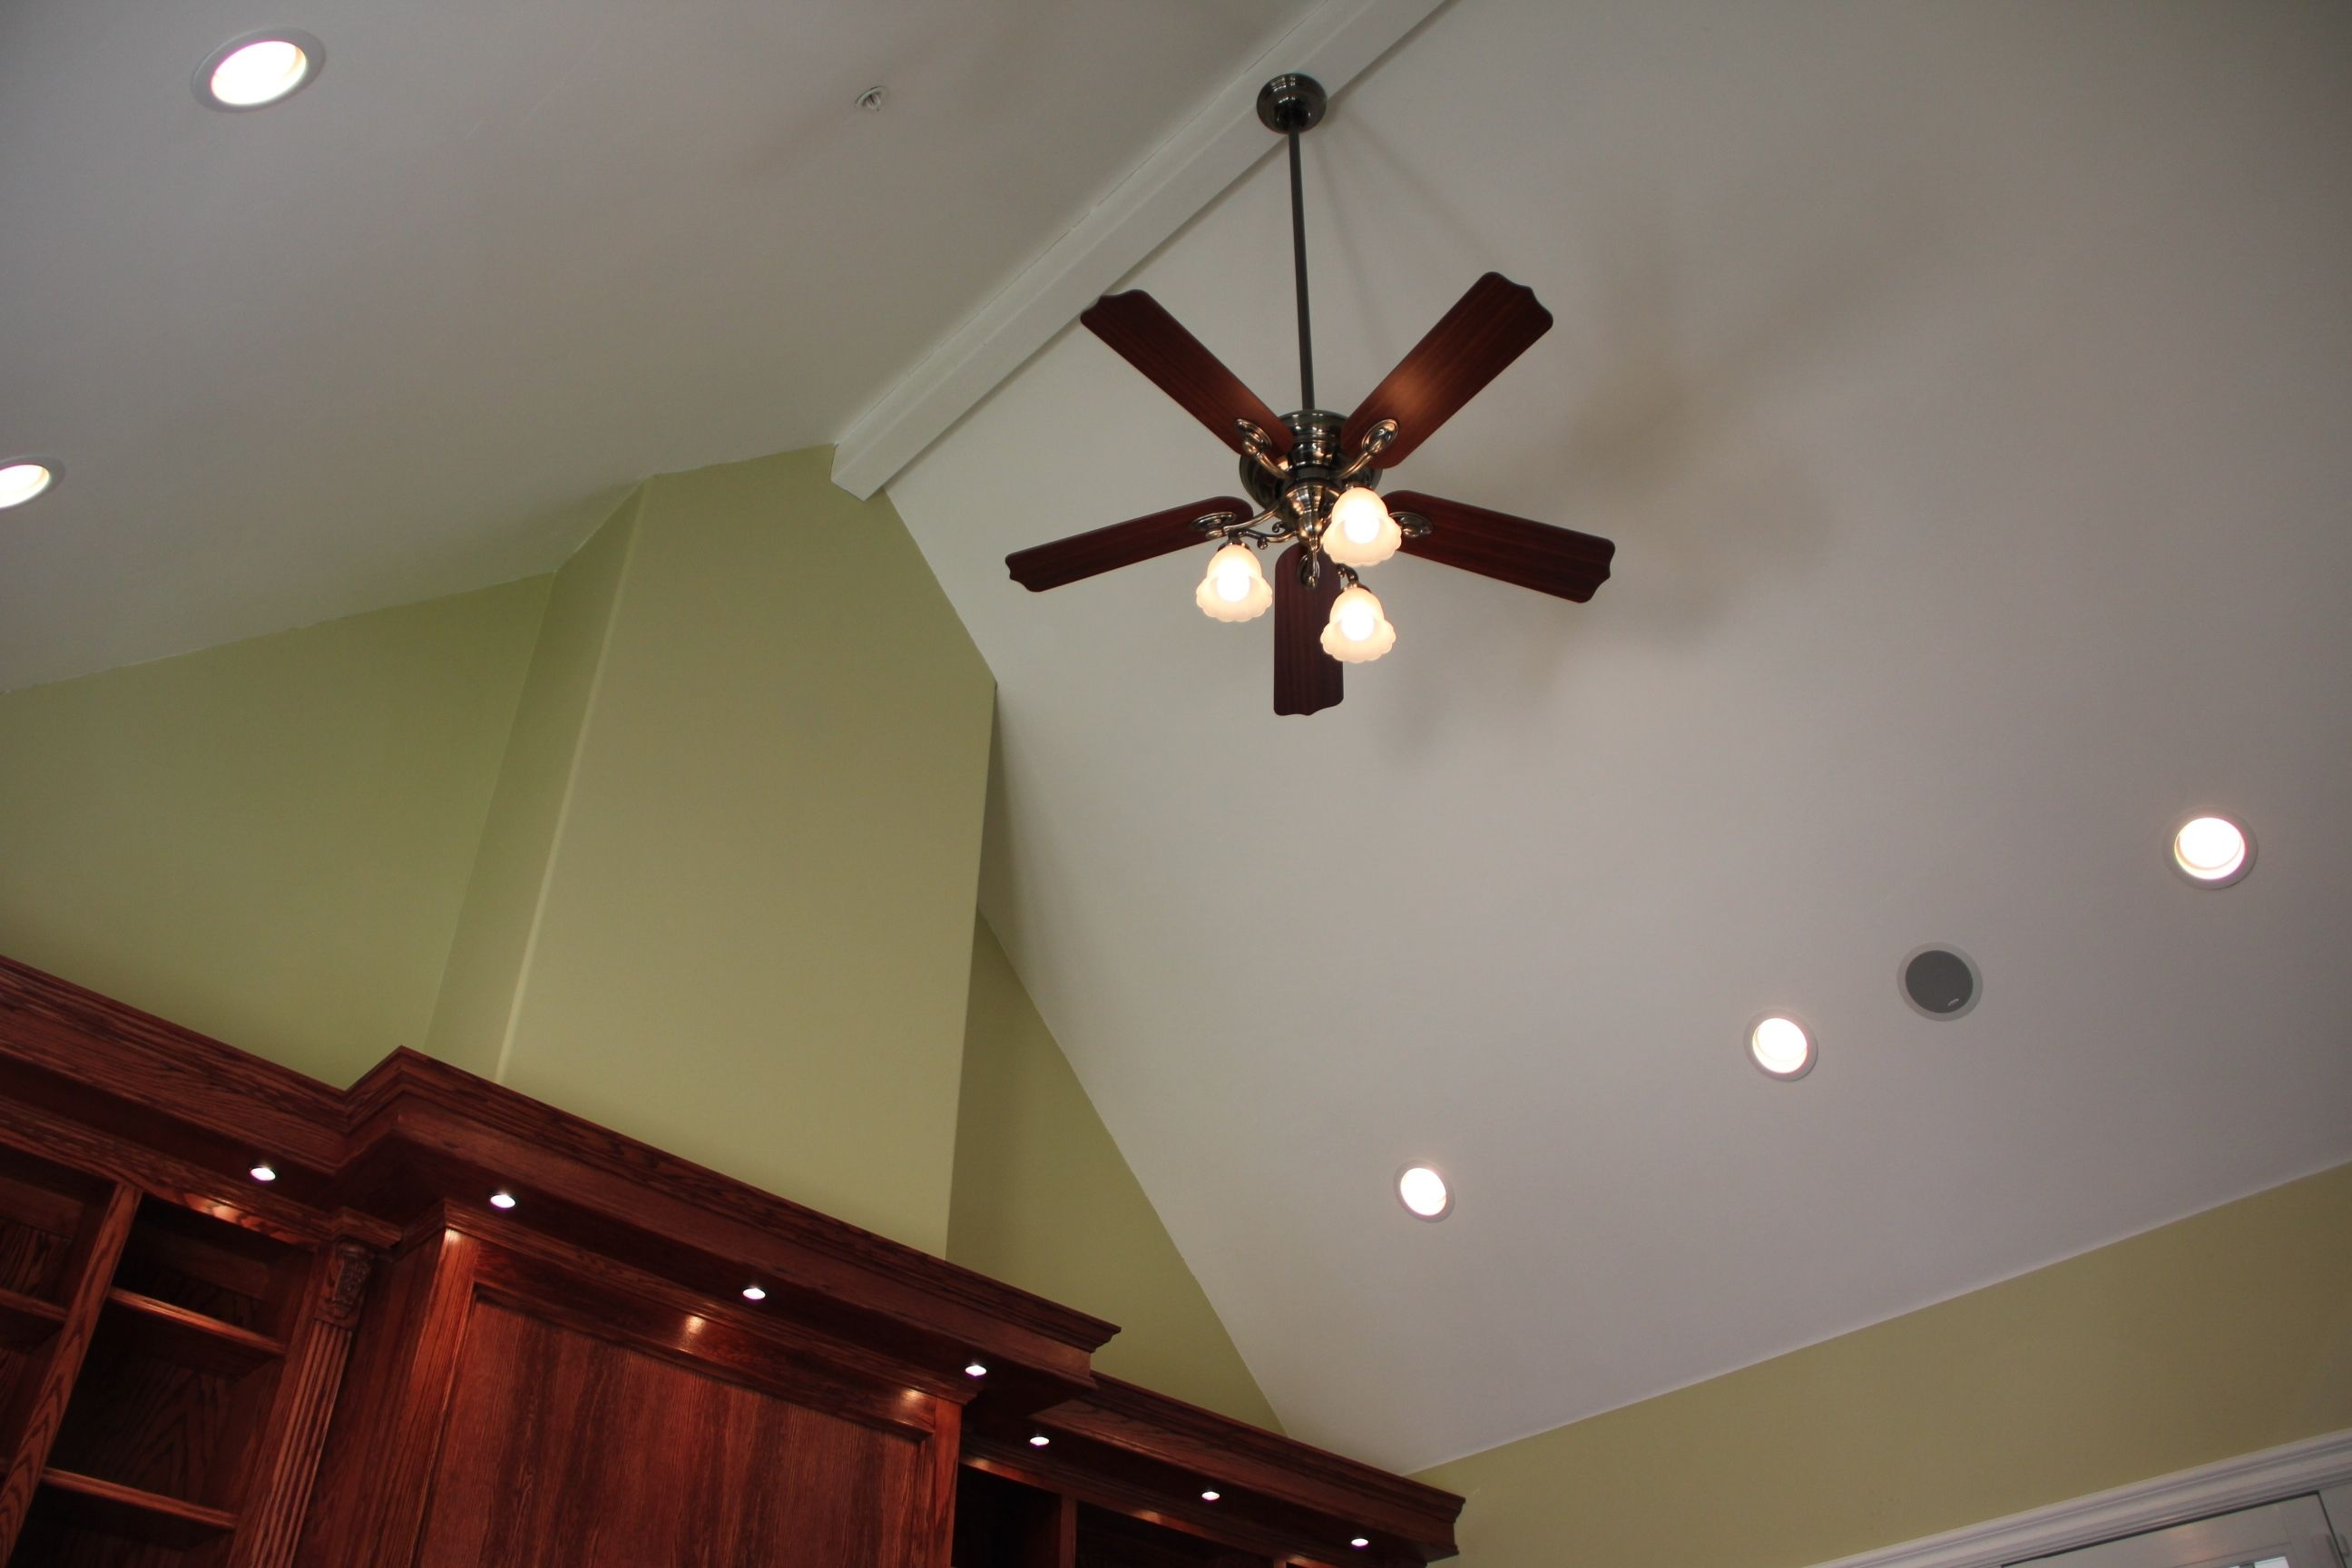 Ceiling fan mount for vaulted ceiling ladysrofo pinterest